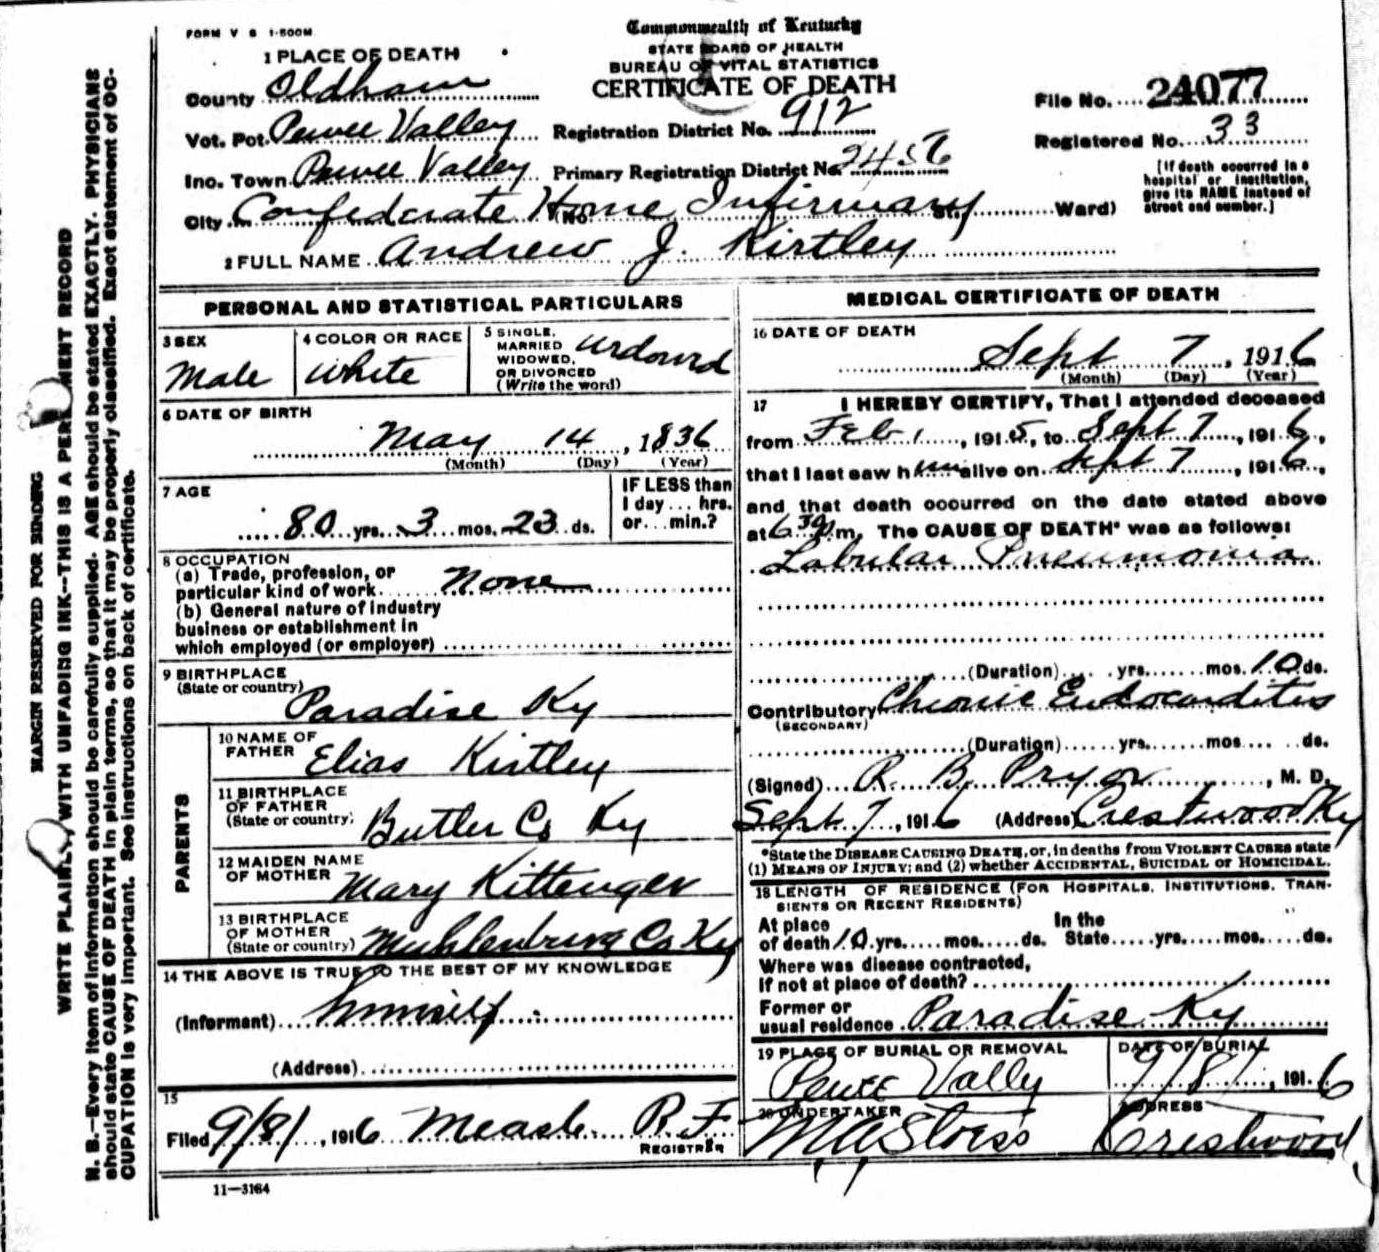 Death certificates k kentucky death certificate 24077 andrew j kirtley 1836 1916 elias kirtley mary kittinger confederate house infirmary paradise butler muhlenberg xflitez Choice Image